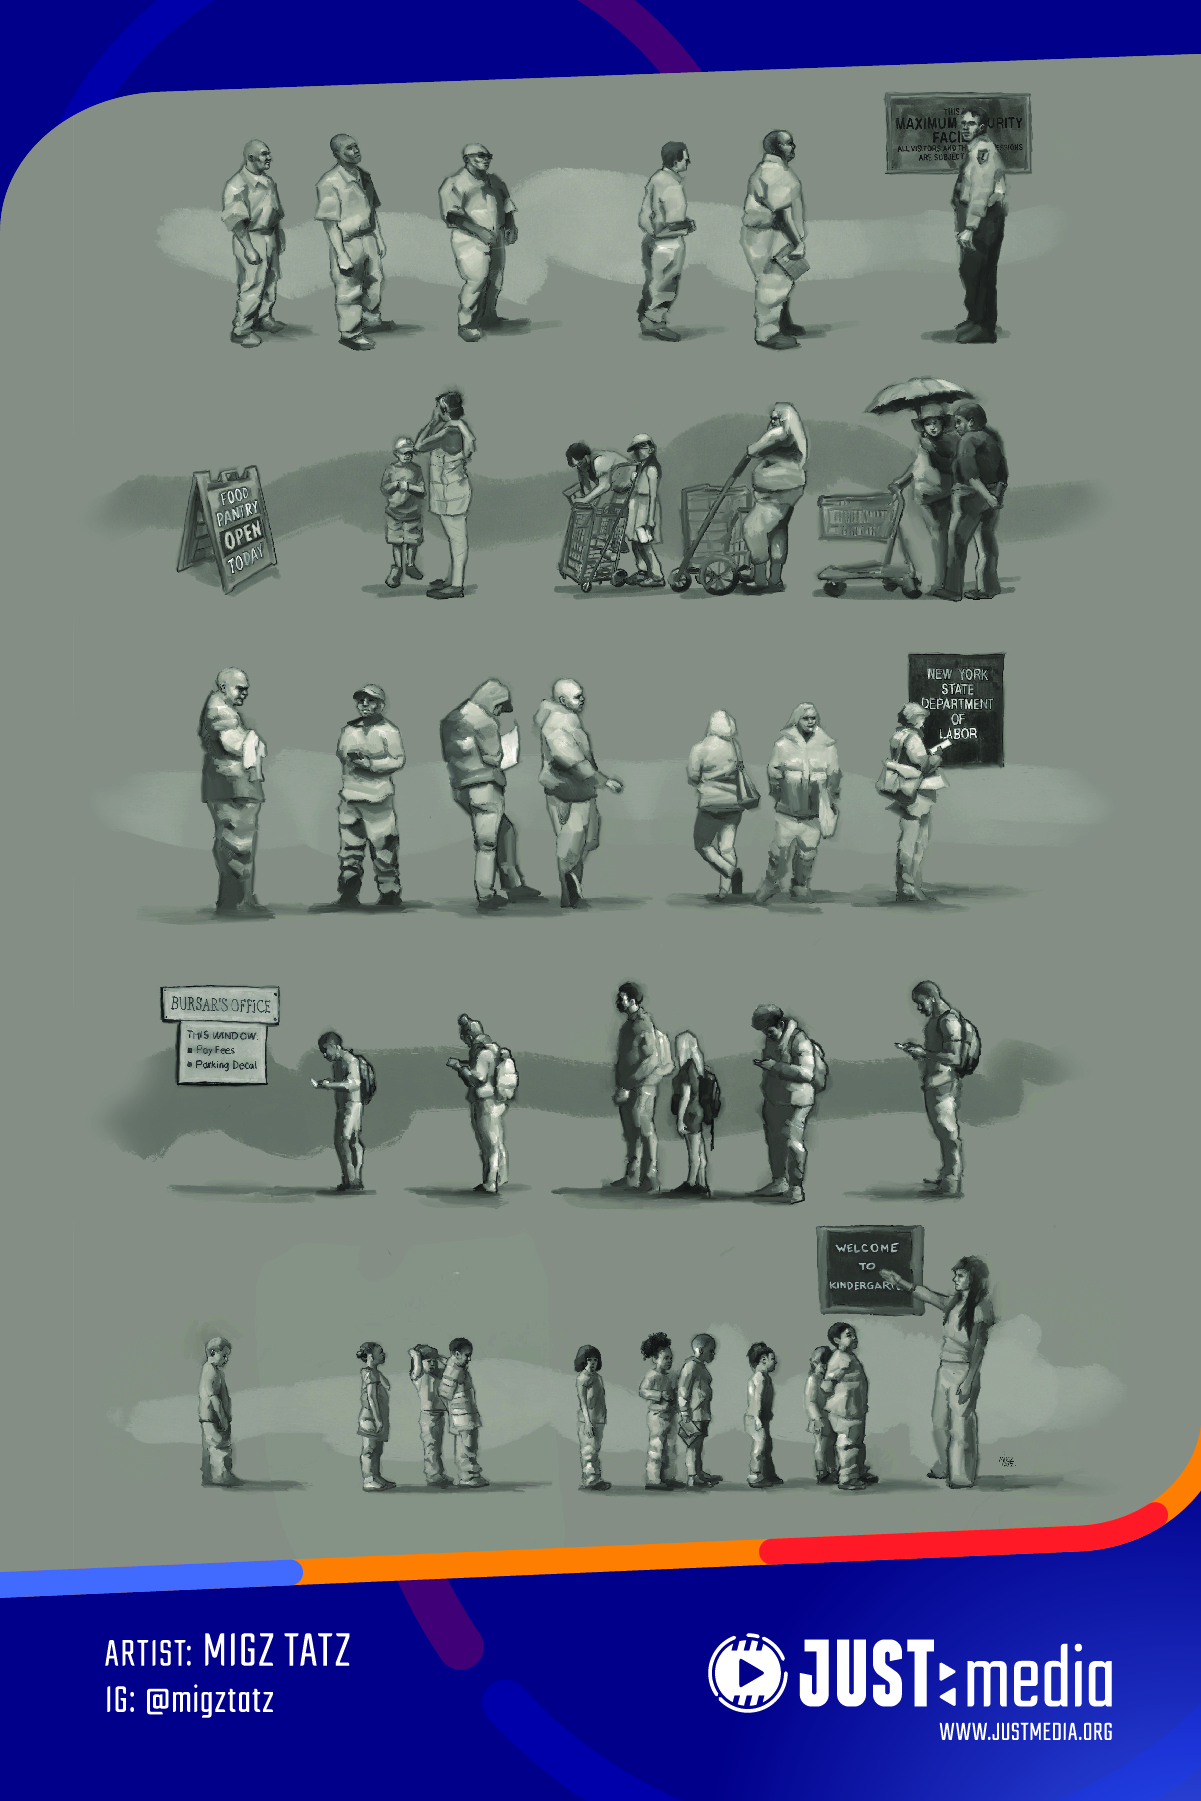 Poster with people standing and waiting in a variety of single file lines